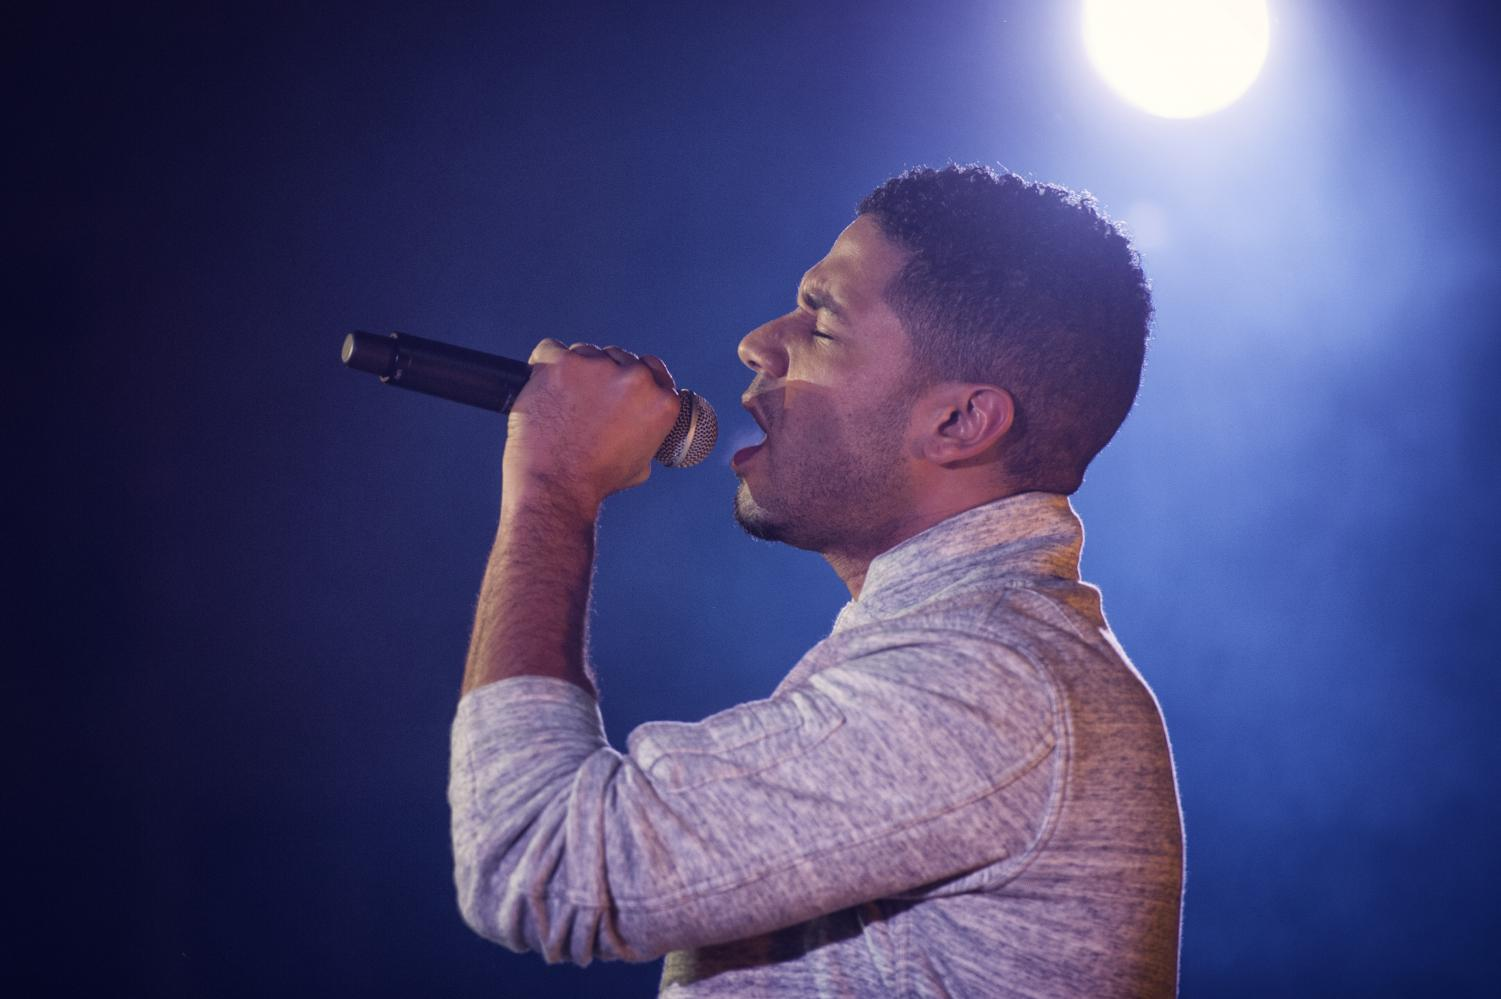 Jussie Smollett sings on stage at Yokota Air Base in Fussa, Japan. According to Empire's director, Smollett makes about $65,000 per episode for the most recent season of the TV series.